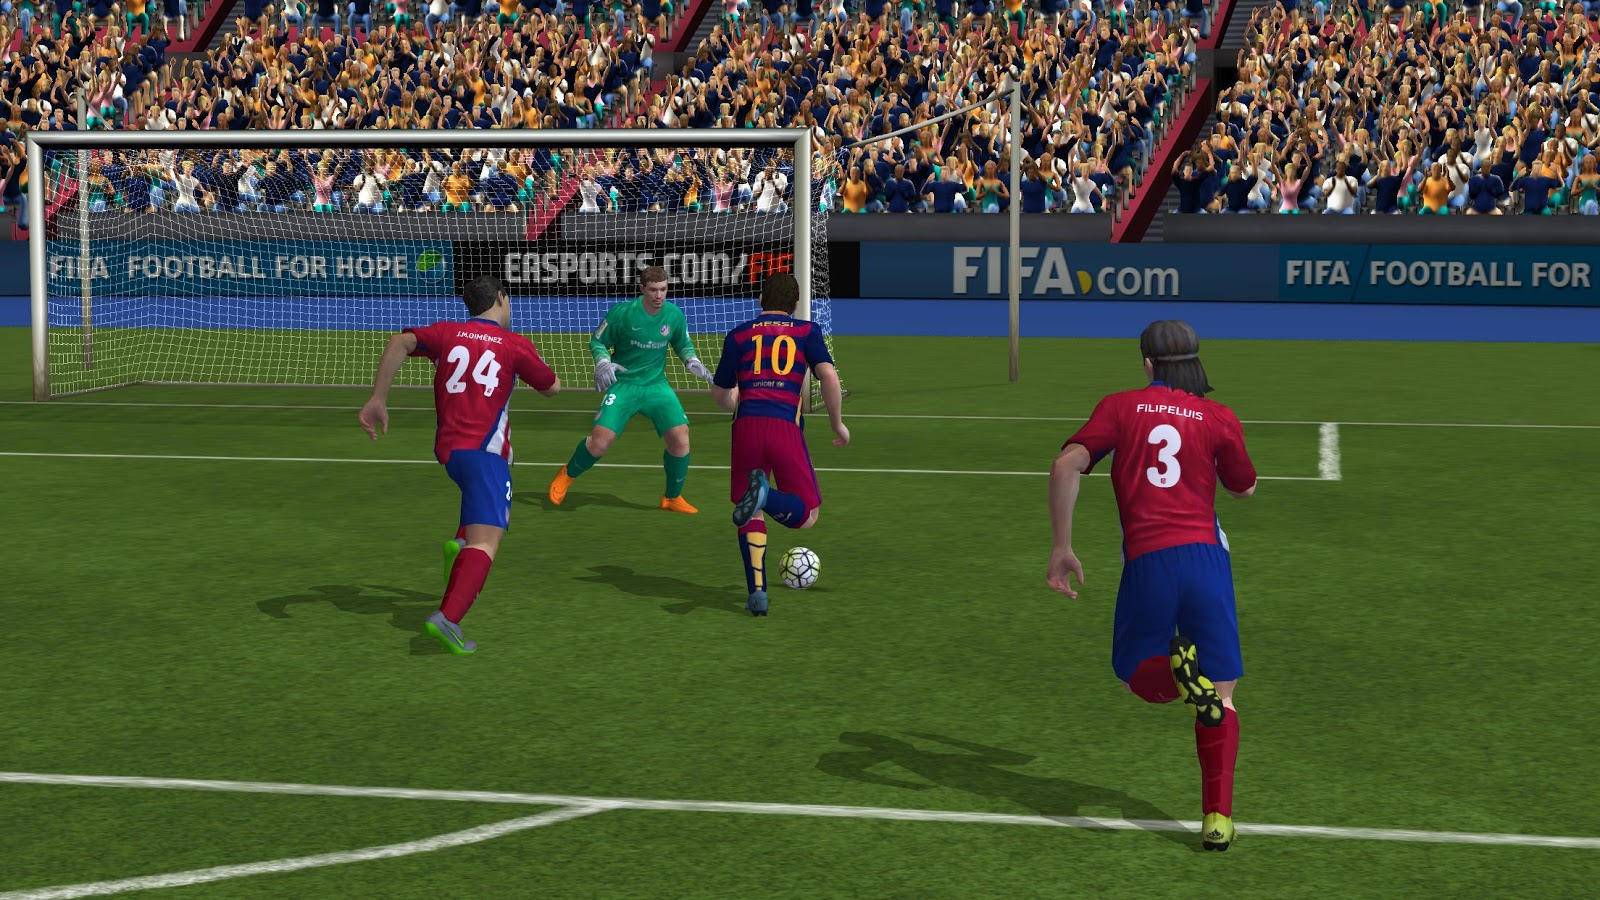 download fifa 15 apk obb highly compressed